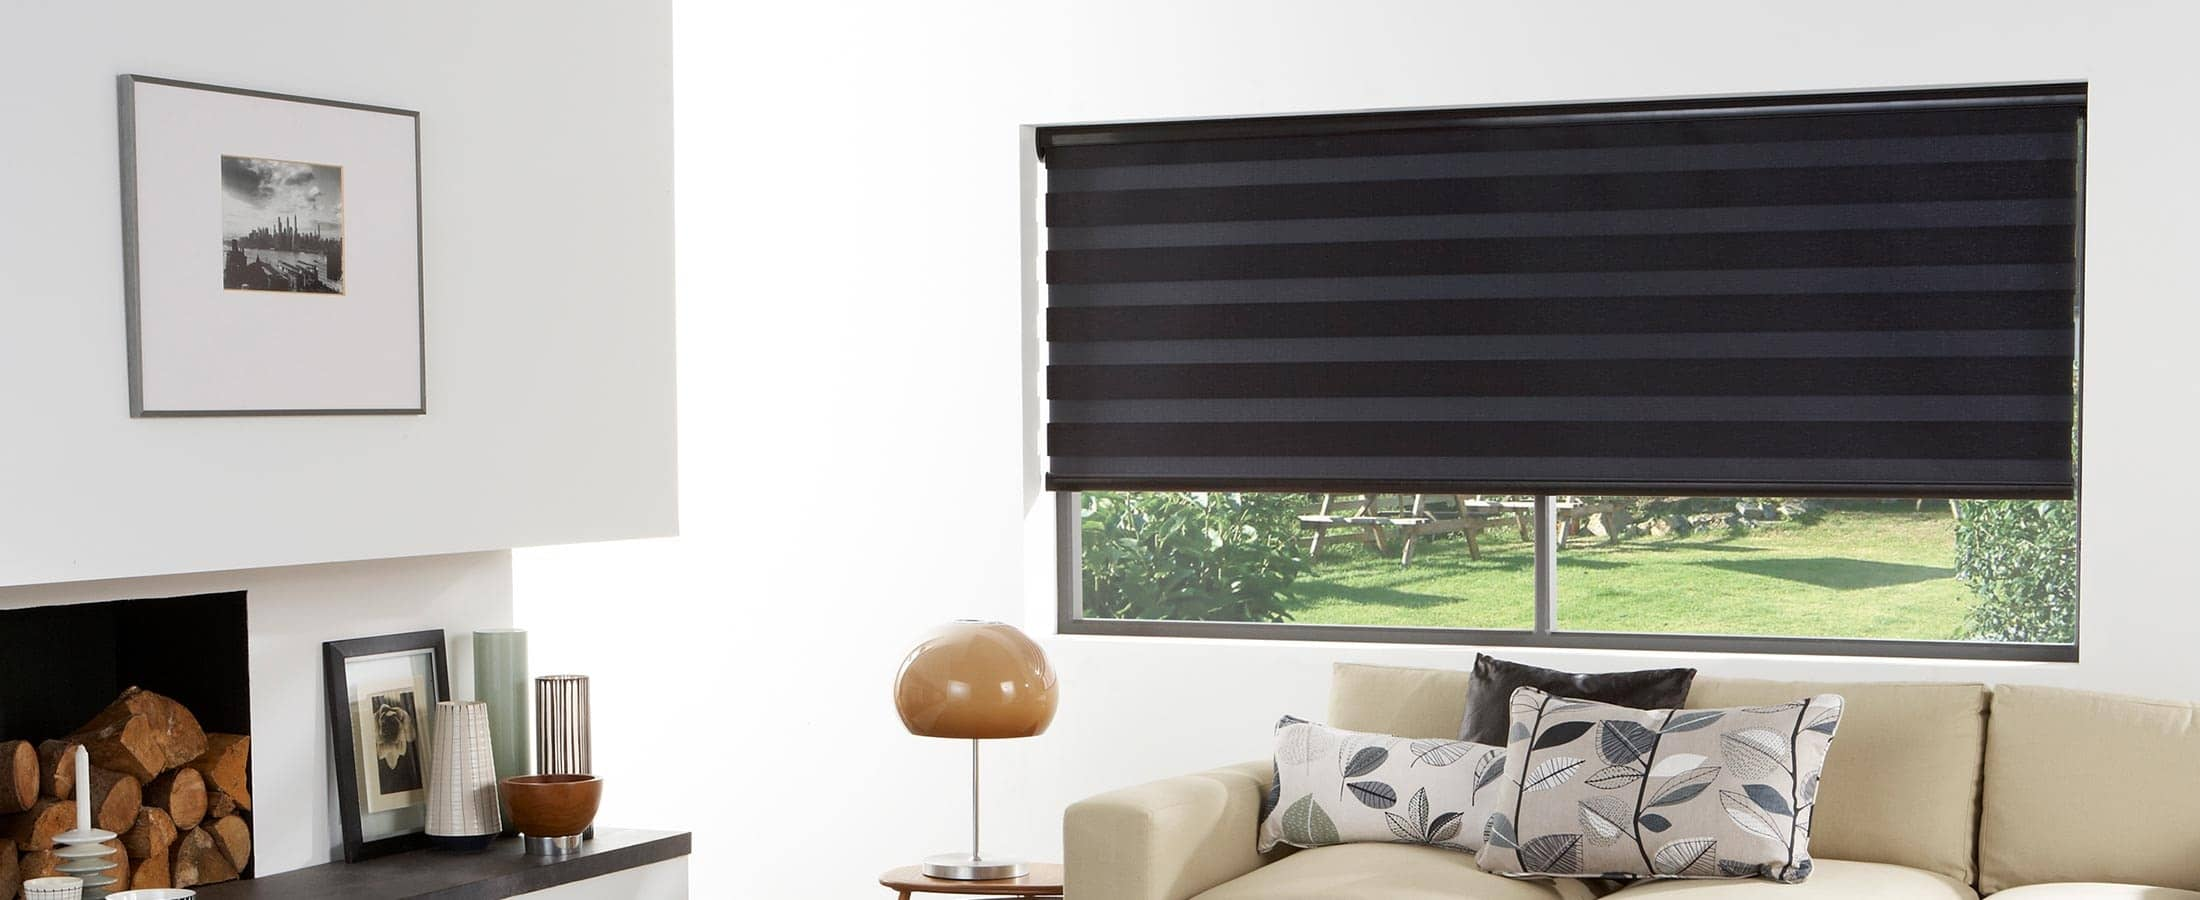 BLack Vision Zebra Blinds closed